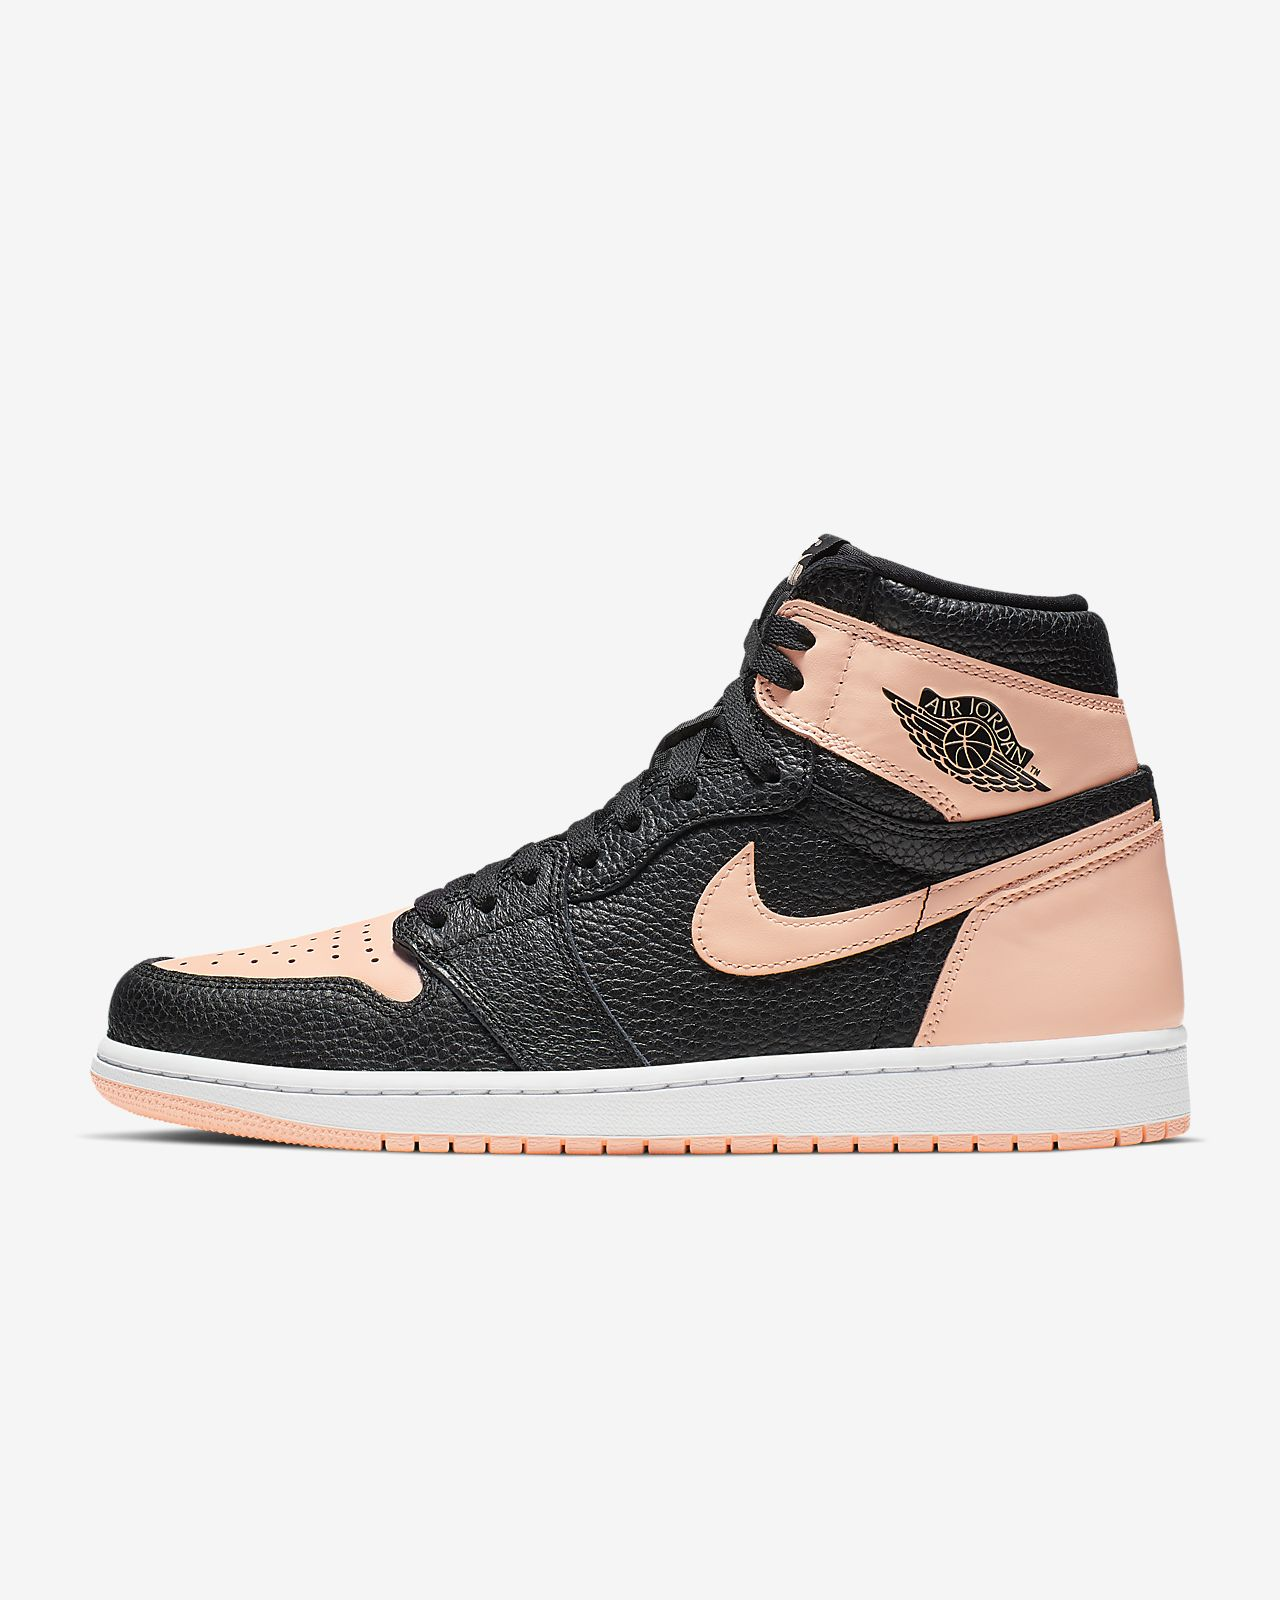 44e6b3b47e5d9e Air Jordan 1 Retro High OG Shoe. Nike.com SG